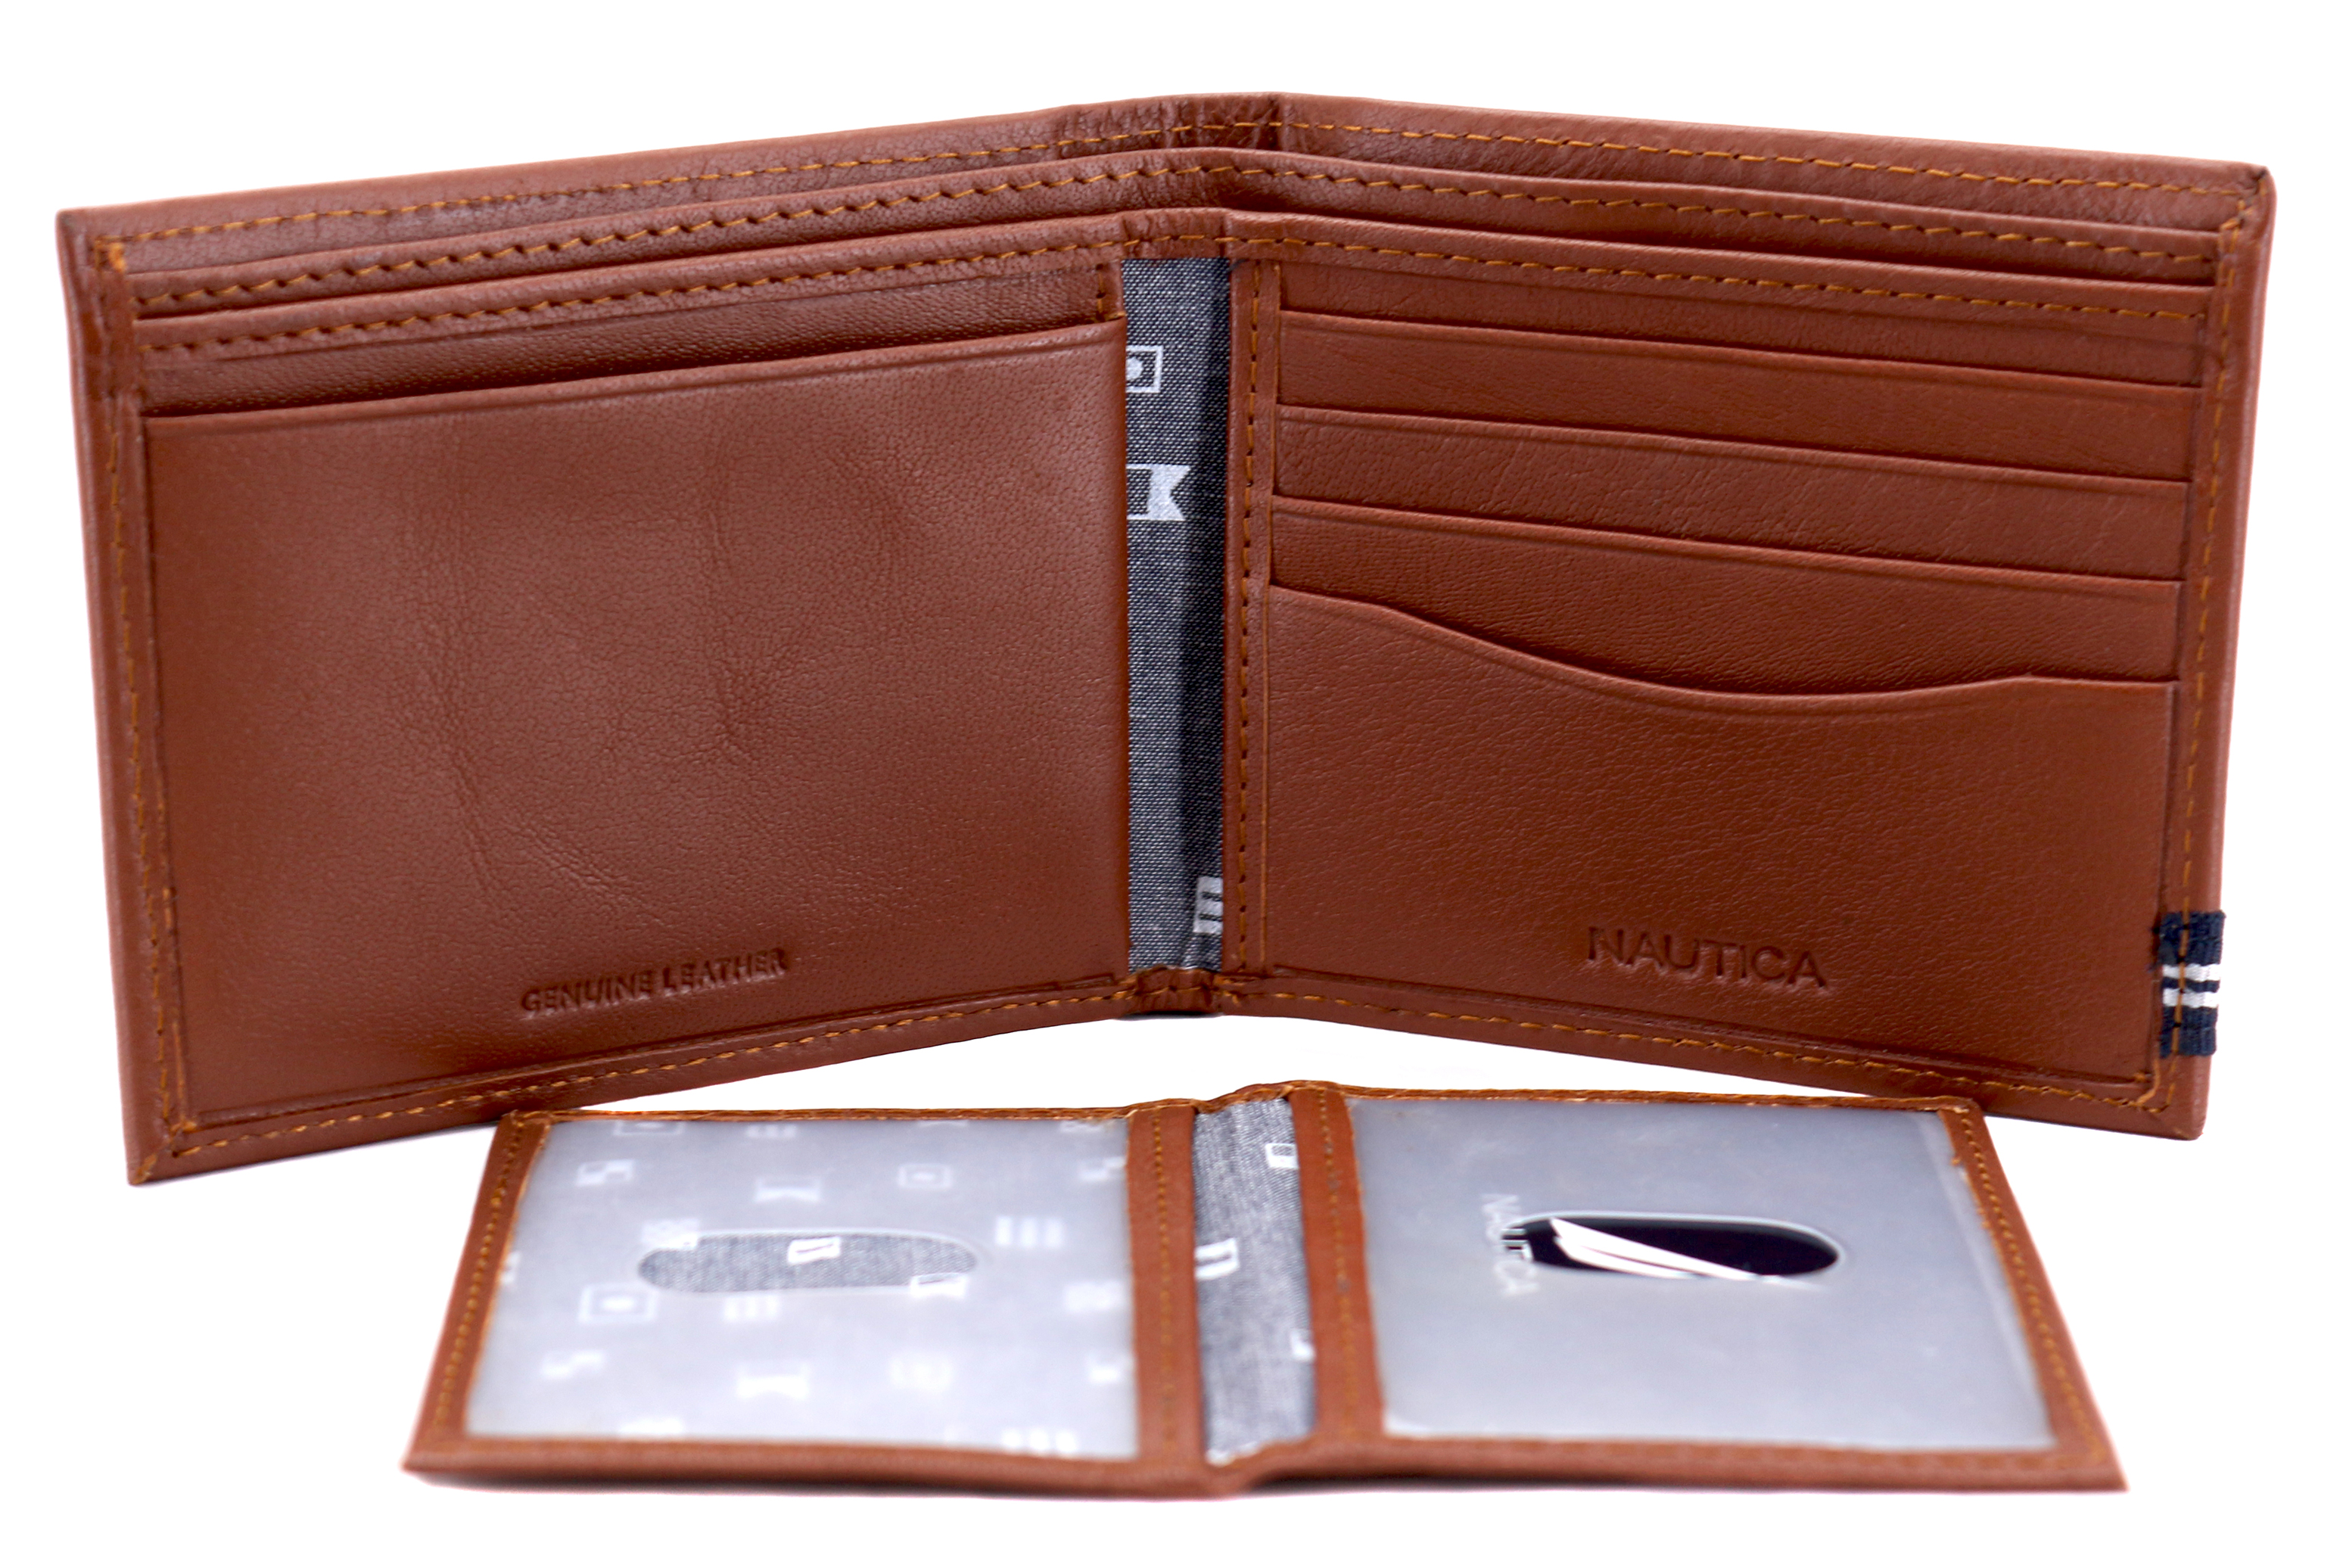 Nautica-Men-039-s-Genuine-Leather-Credit-Card-ID-Double-Billfold-Passcase-Wallet thumbnail 27